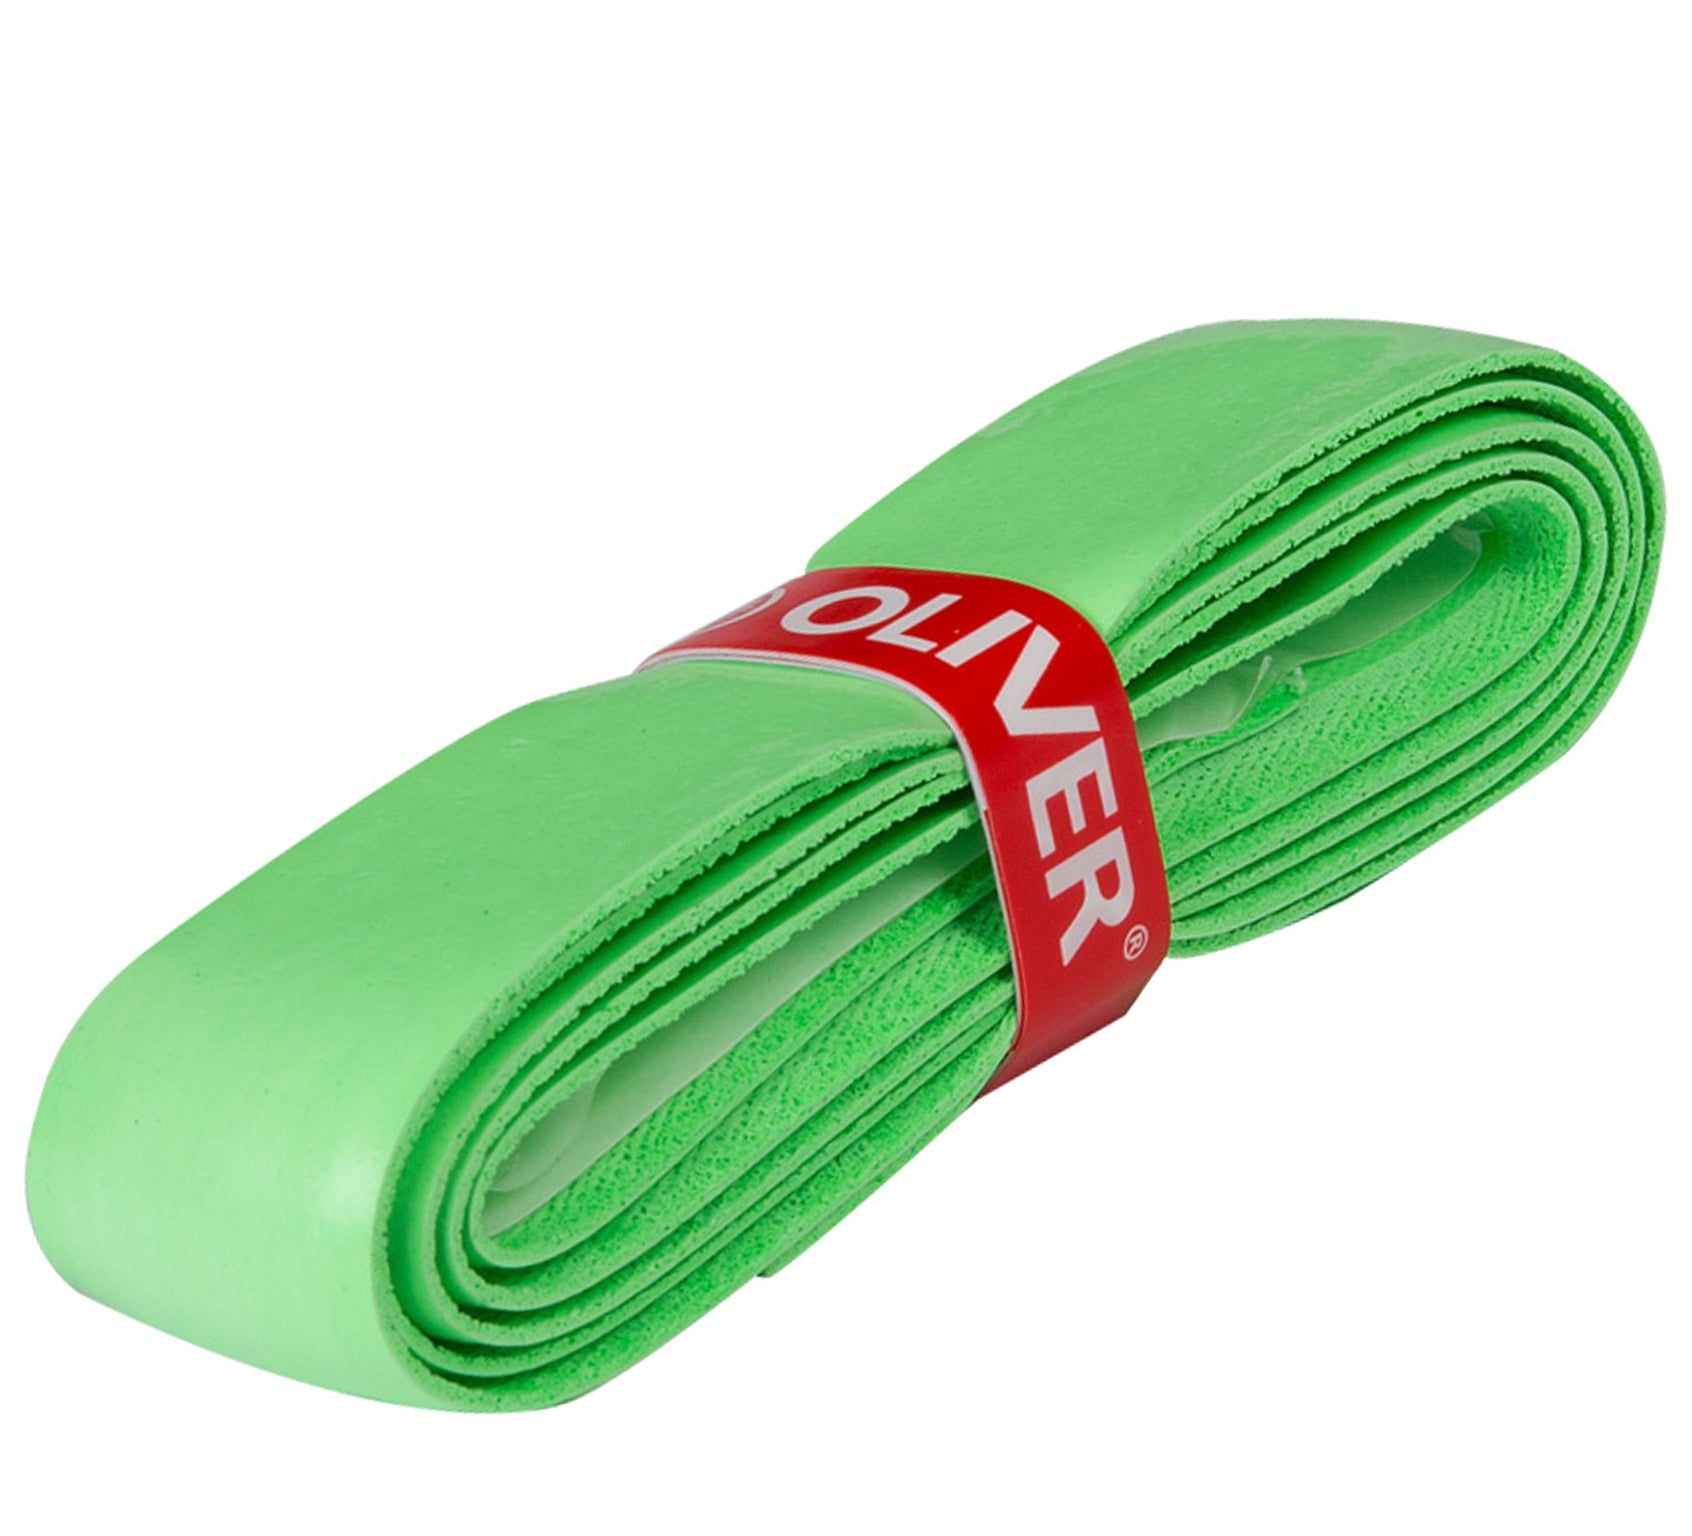 X-Dry Grip Singles (Set of 3 pcs. - Green)